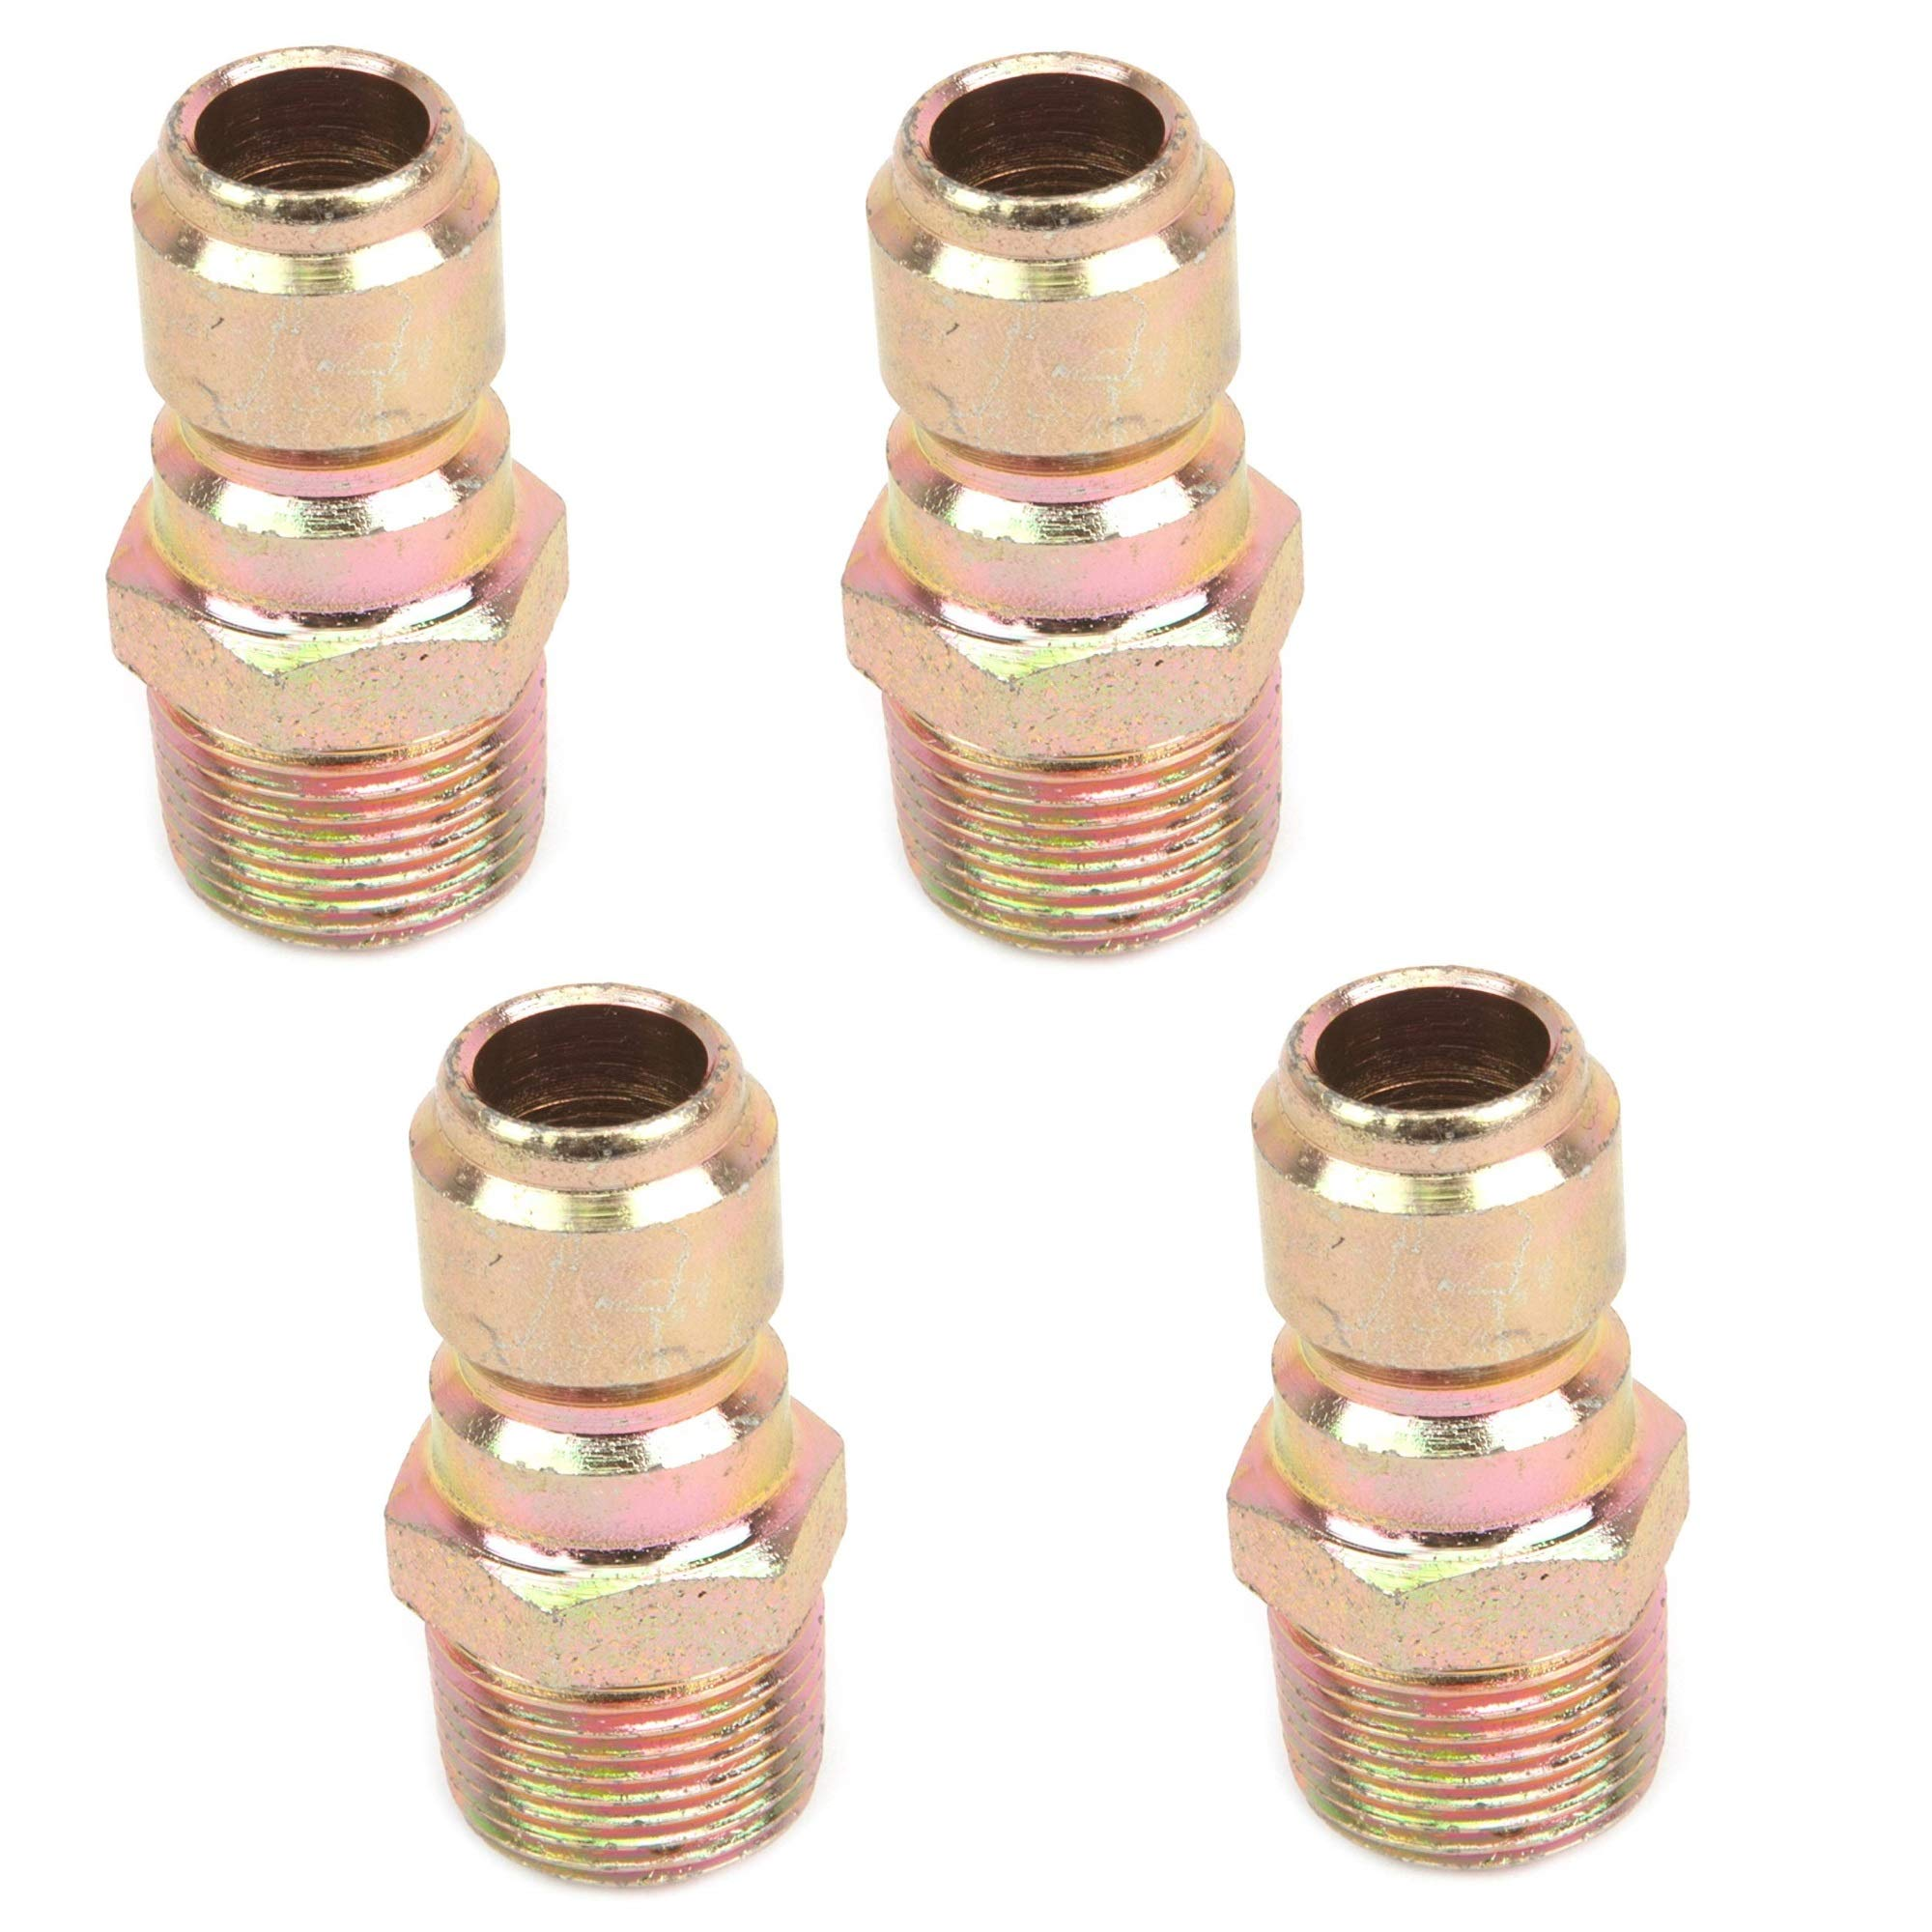 Forney 75136 Pressure Washer Accessories, Quick Coupler Plug, 3/8-Inch Male NPT, 4,200 PSI, 4 Pack by Forney